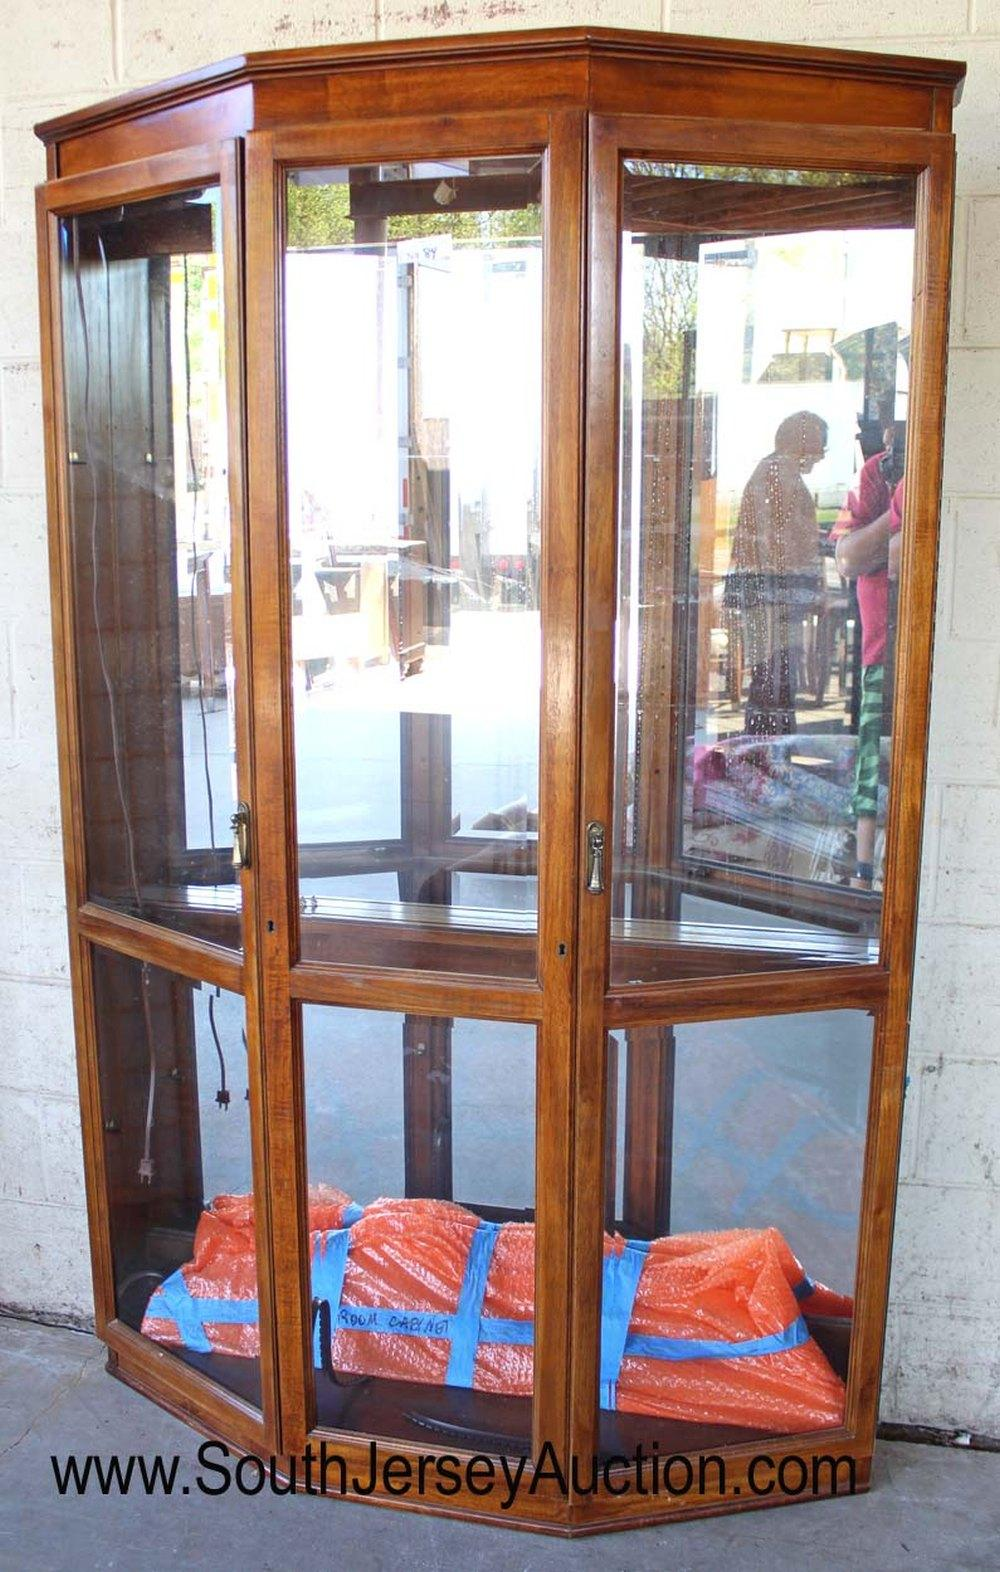 Contemporary Brown Mahogany Mirrored Back Display Cabinet with Glass Shelves